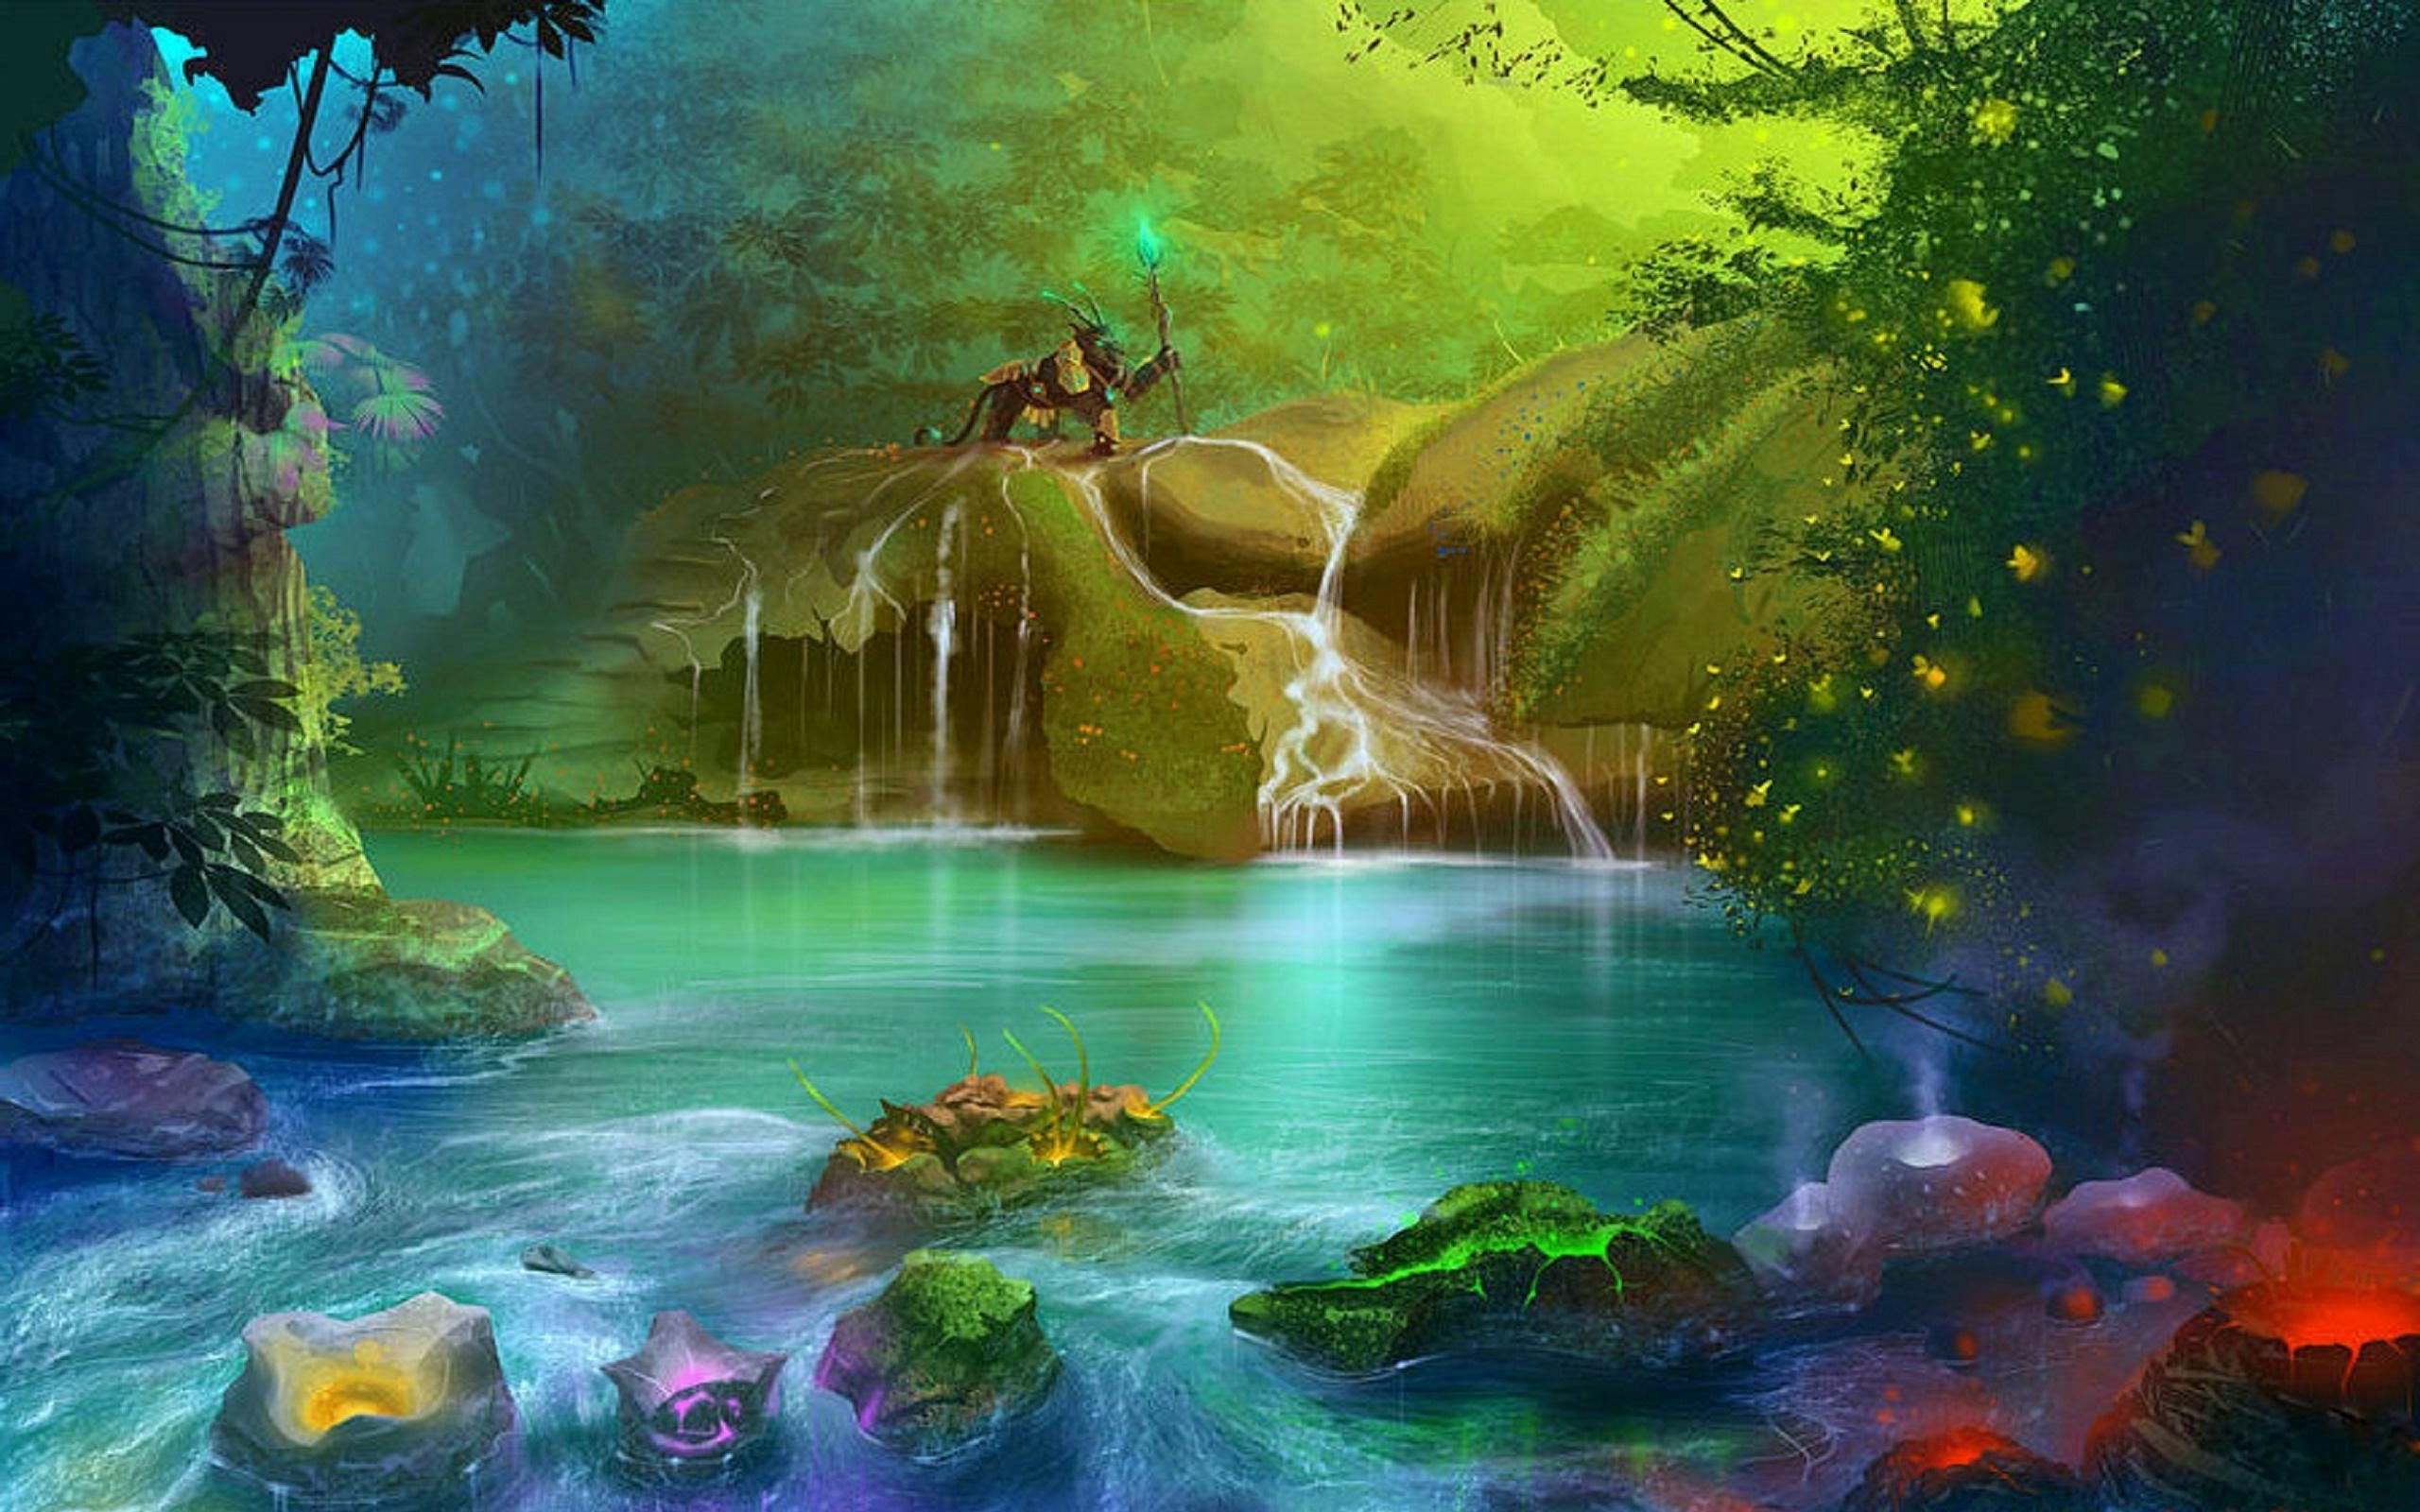 Give Your Desktop A Fantasy Fix Stunning Hd Wallpapers: Spring Fantasy Hd Wallpapers - Google Search